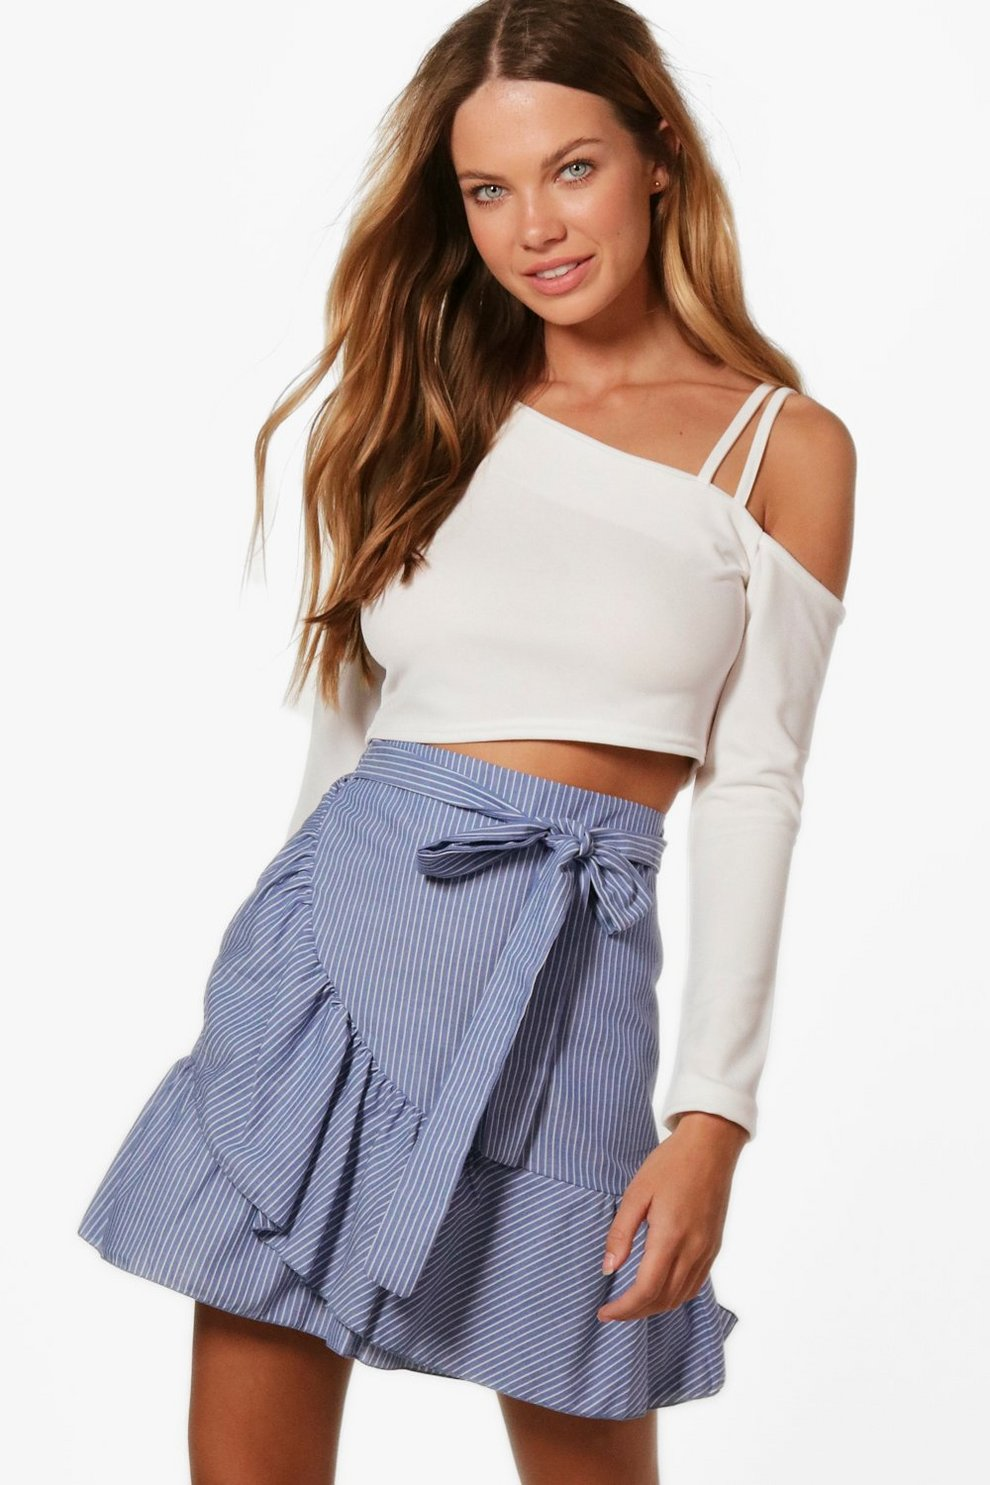 Boohoo Ruffle Wrap Bodysuit Official Site Sale Online Outlet Finishline Buy Cheap In China Wiki Buy Cheap Enjoy OqVyk